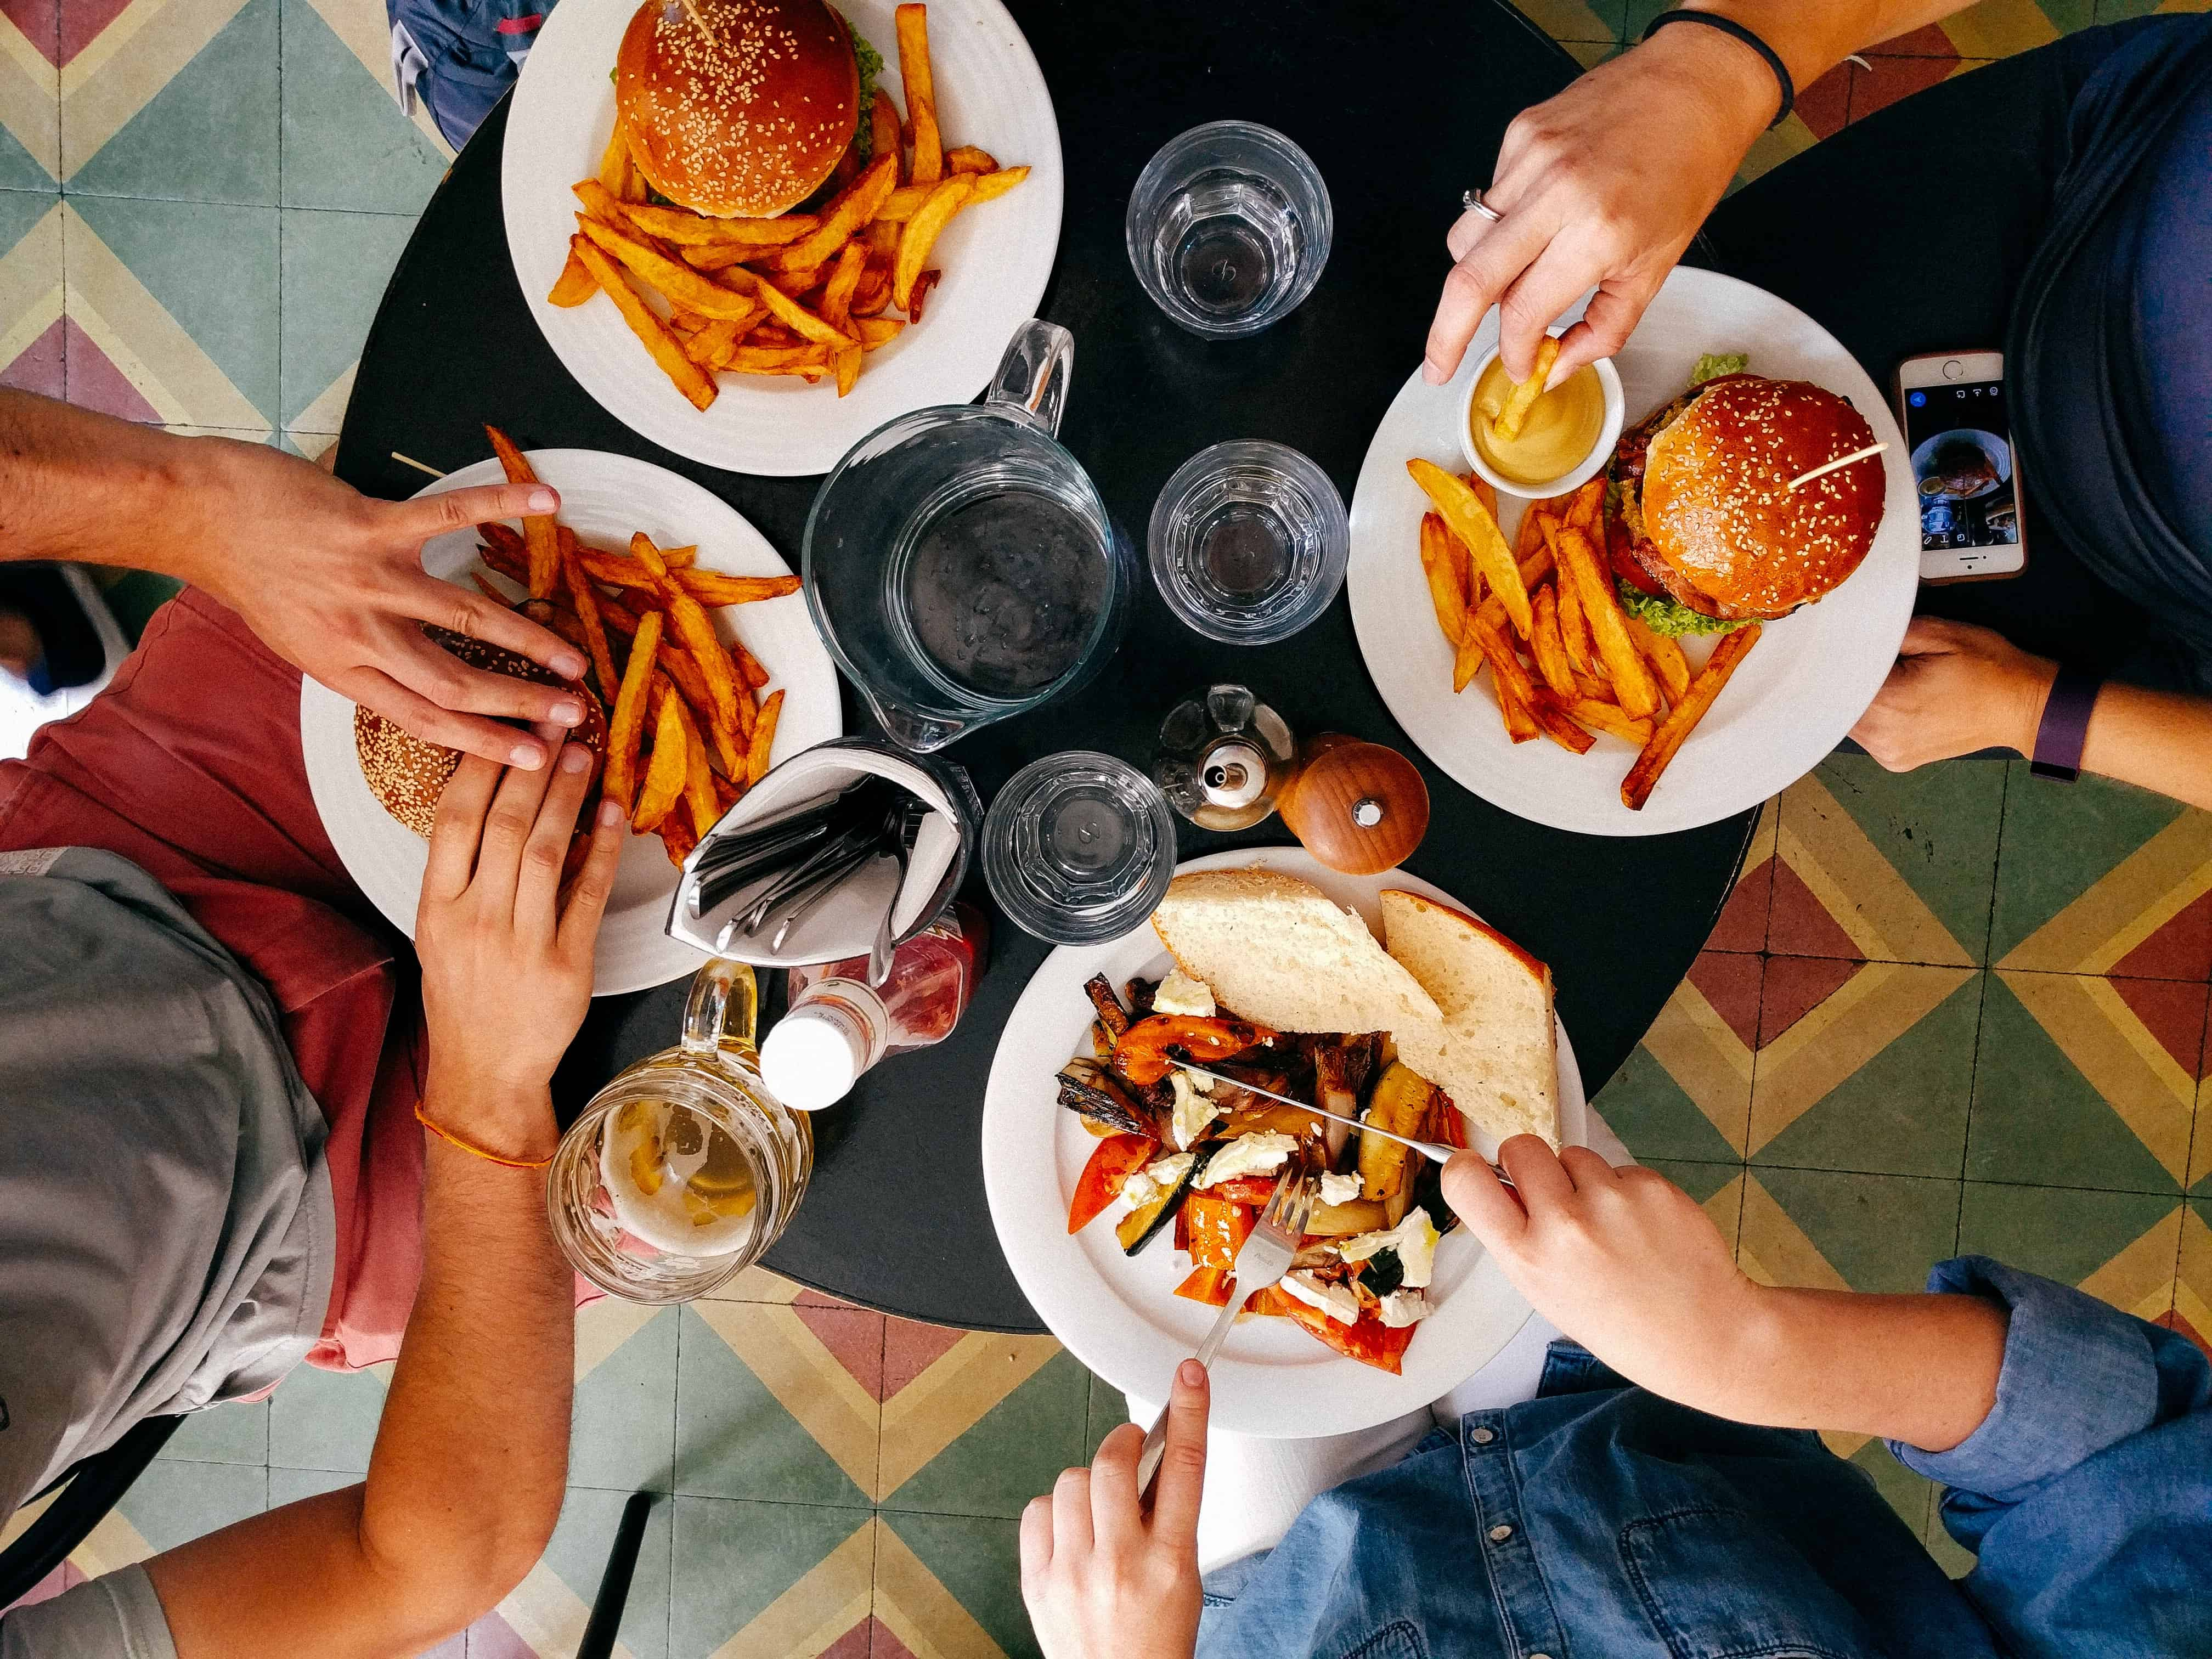 4 people eating burgers and fries, Food facts